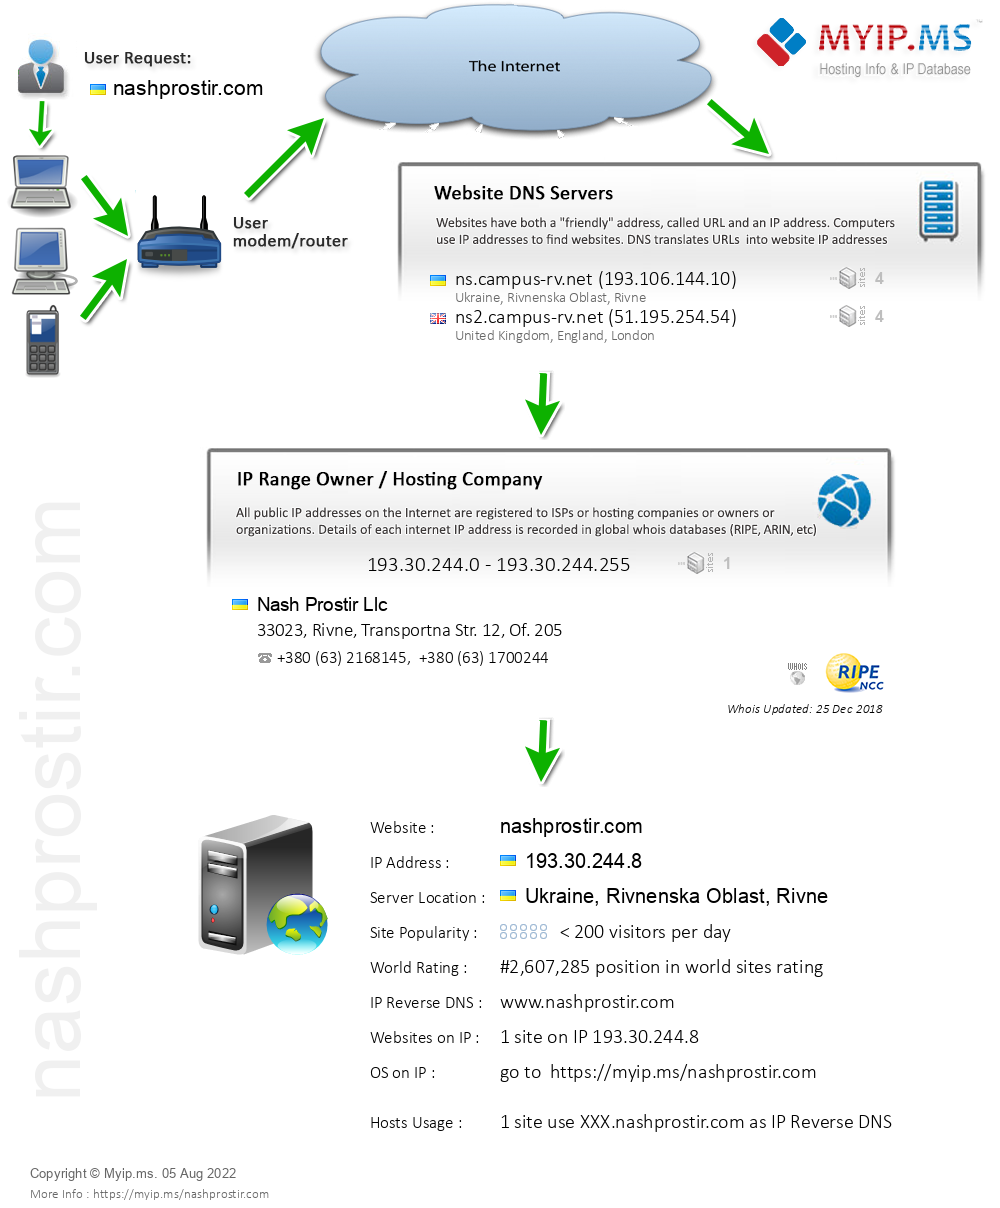 Nashprostir.com - Website Hosting Visual IP Diagram